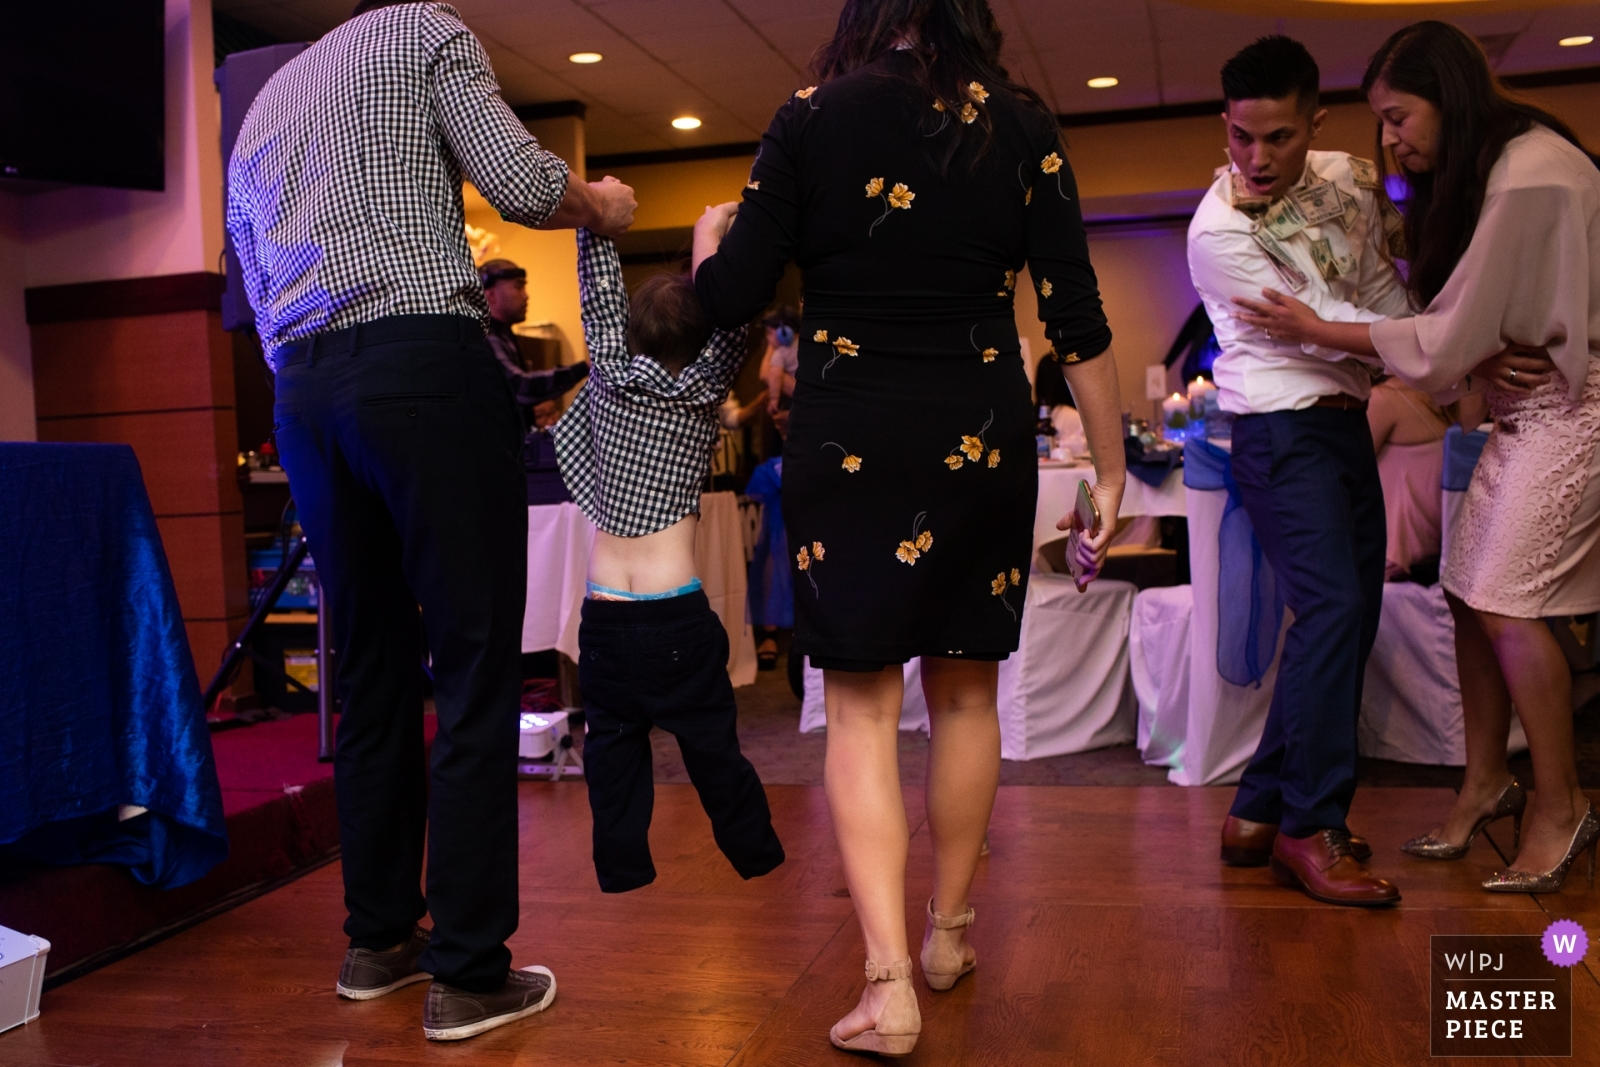 The child is pulled out of the dance floor by the parents - San Jose, California - Northern Wedding Photography -  | New Port Restaurant in Cupertino